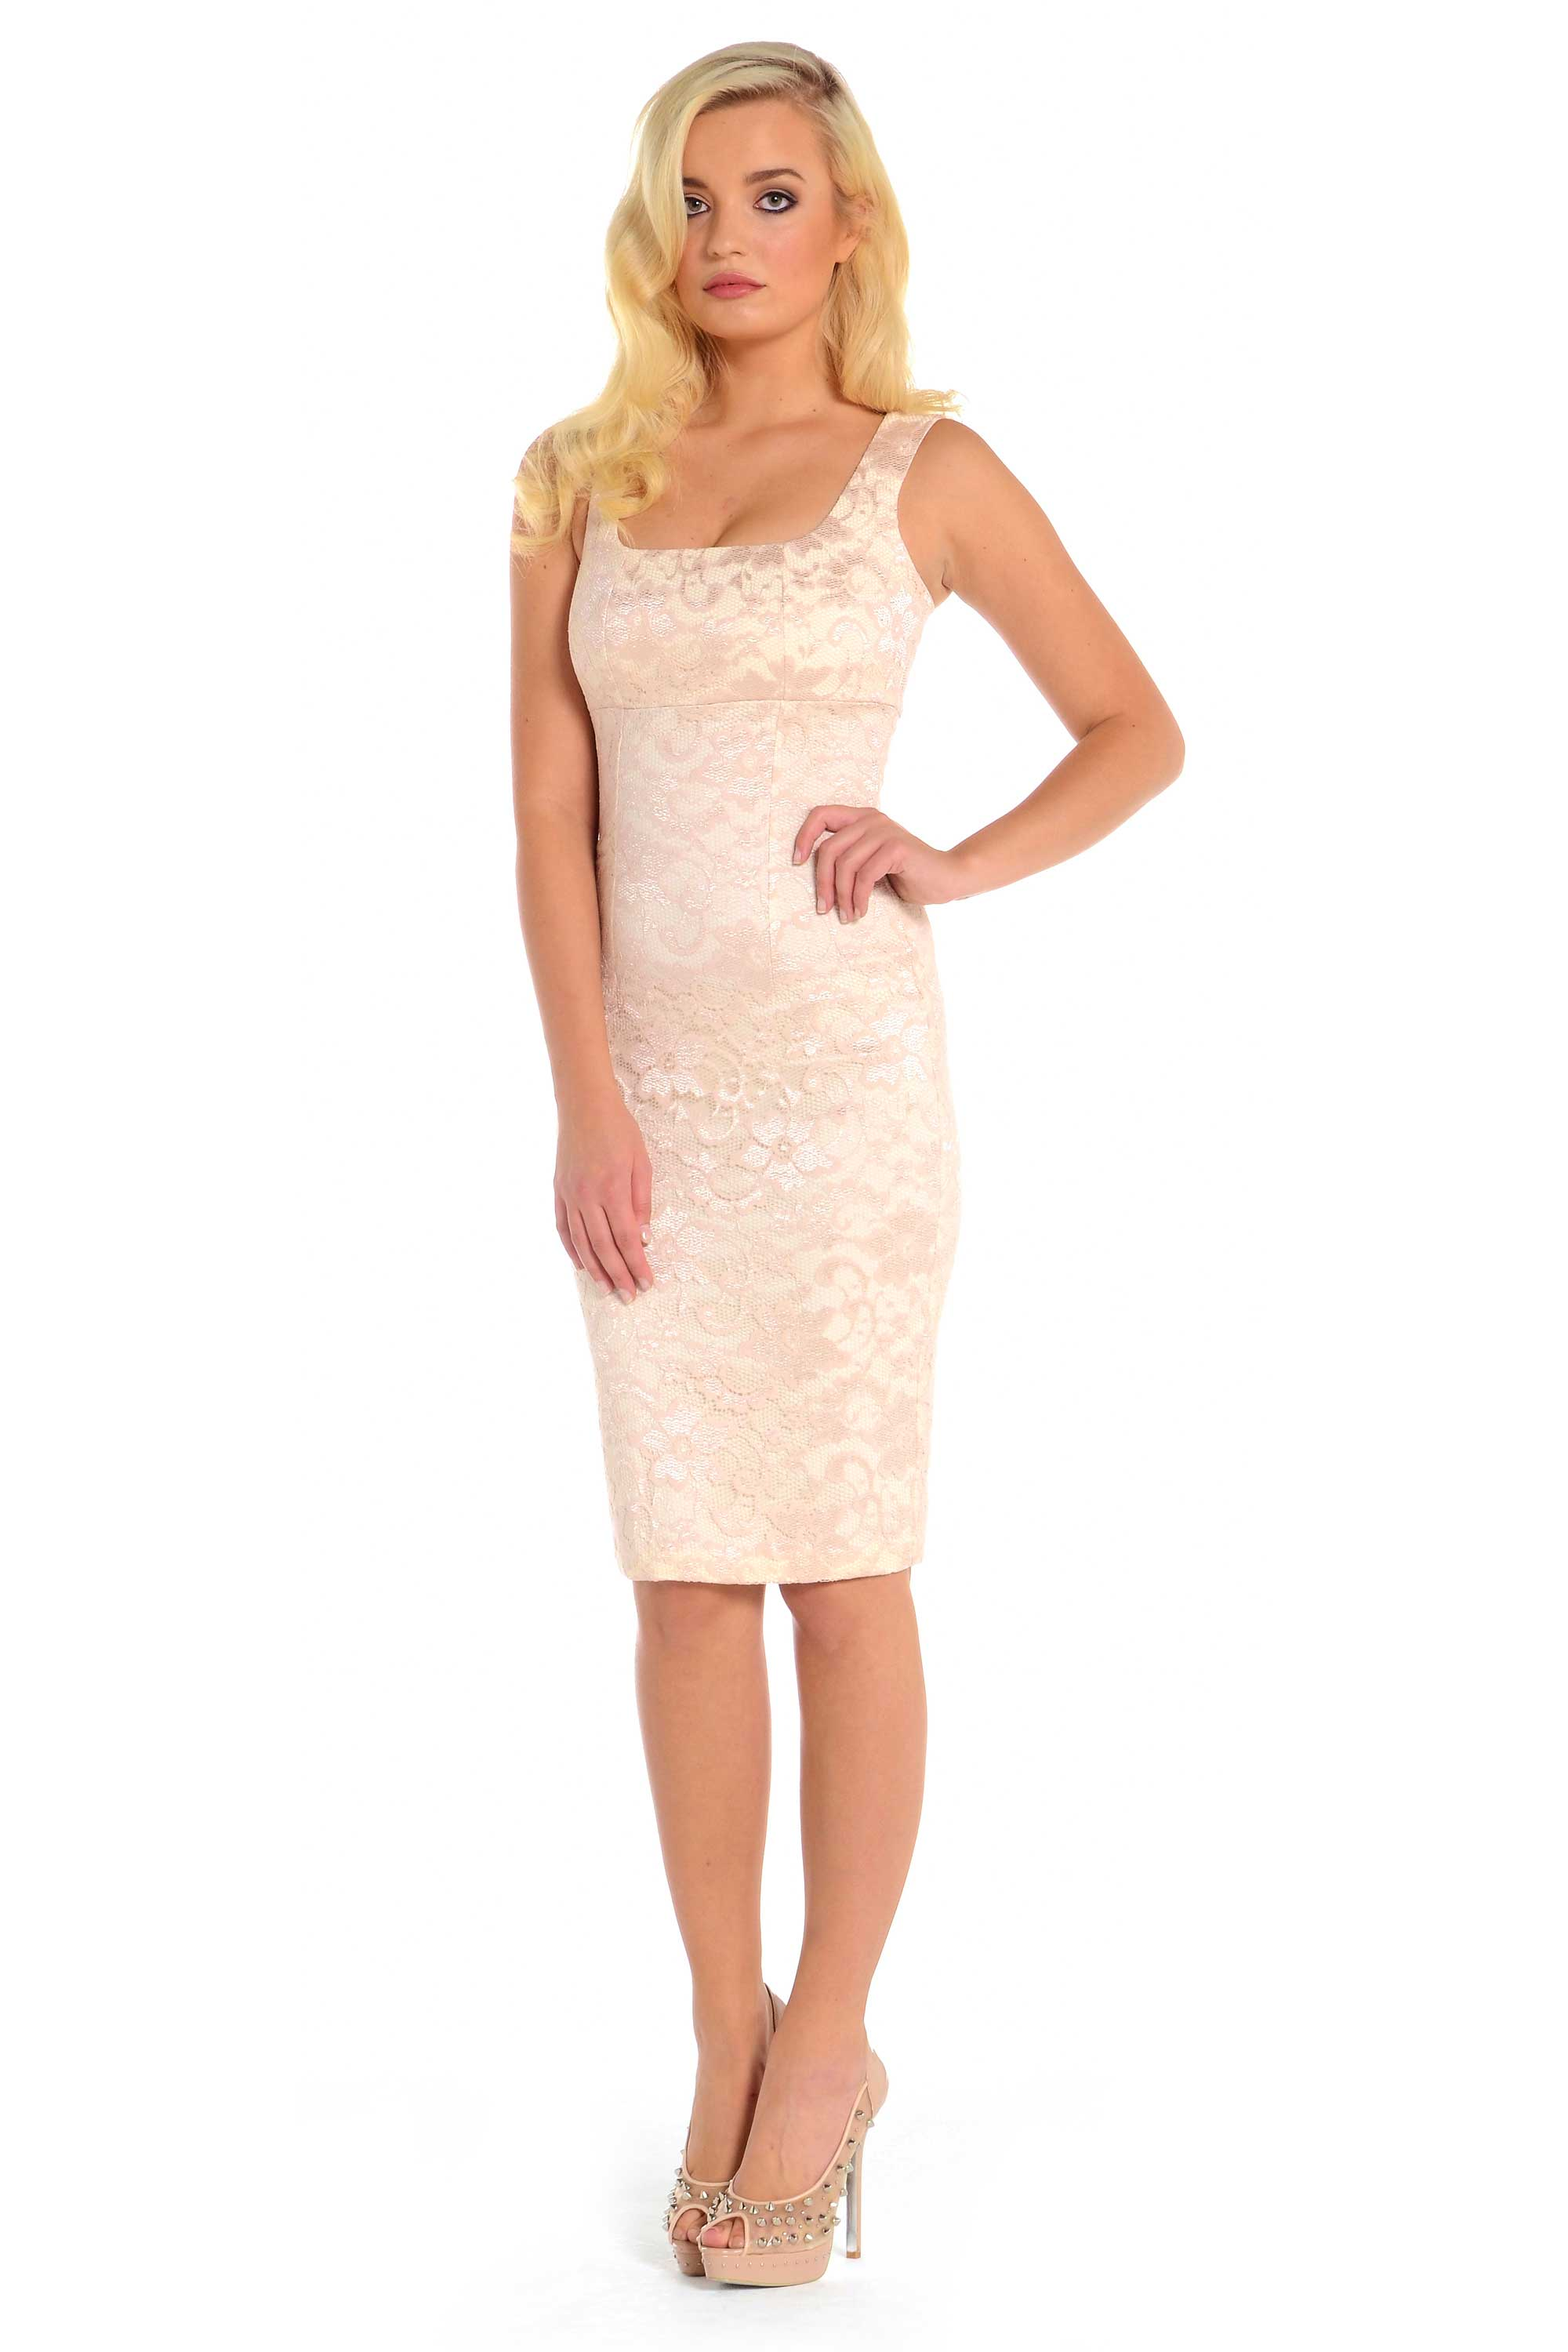 Nude Lace Dress Chi Chi London Premium Lace Dress With